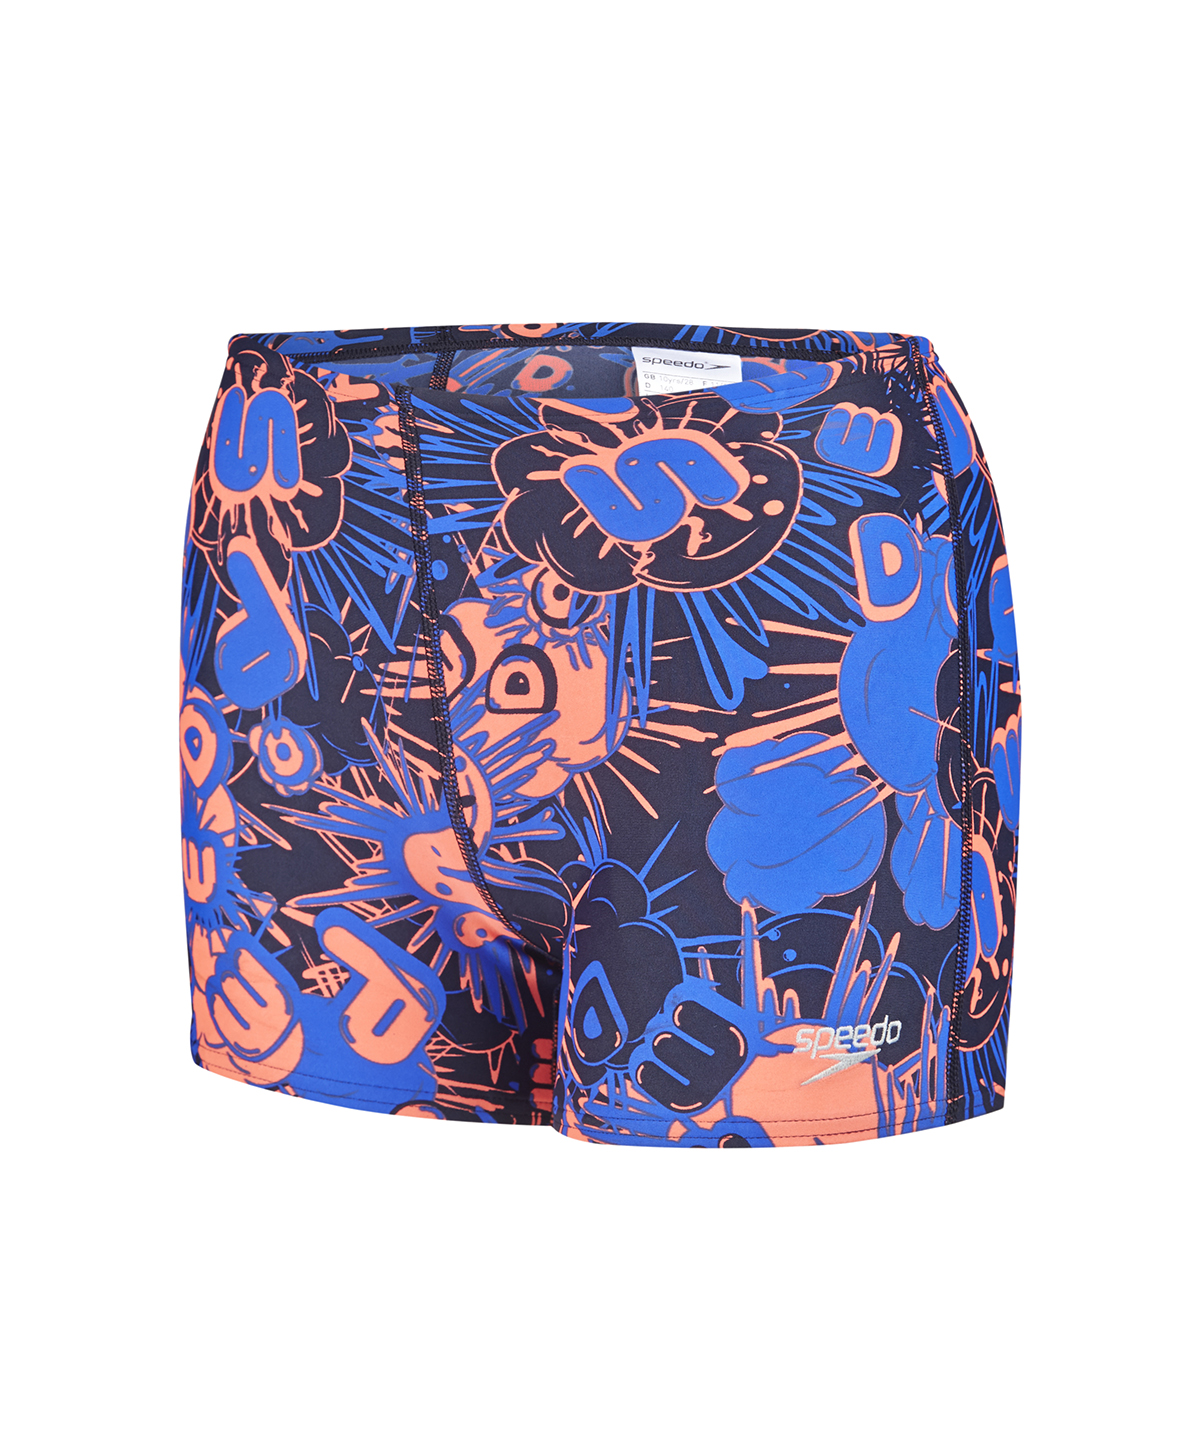 Speedo Boys Allover Aquashort - Navy/Orange